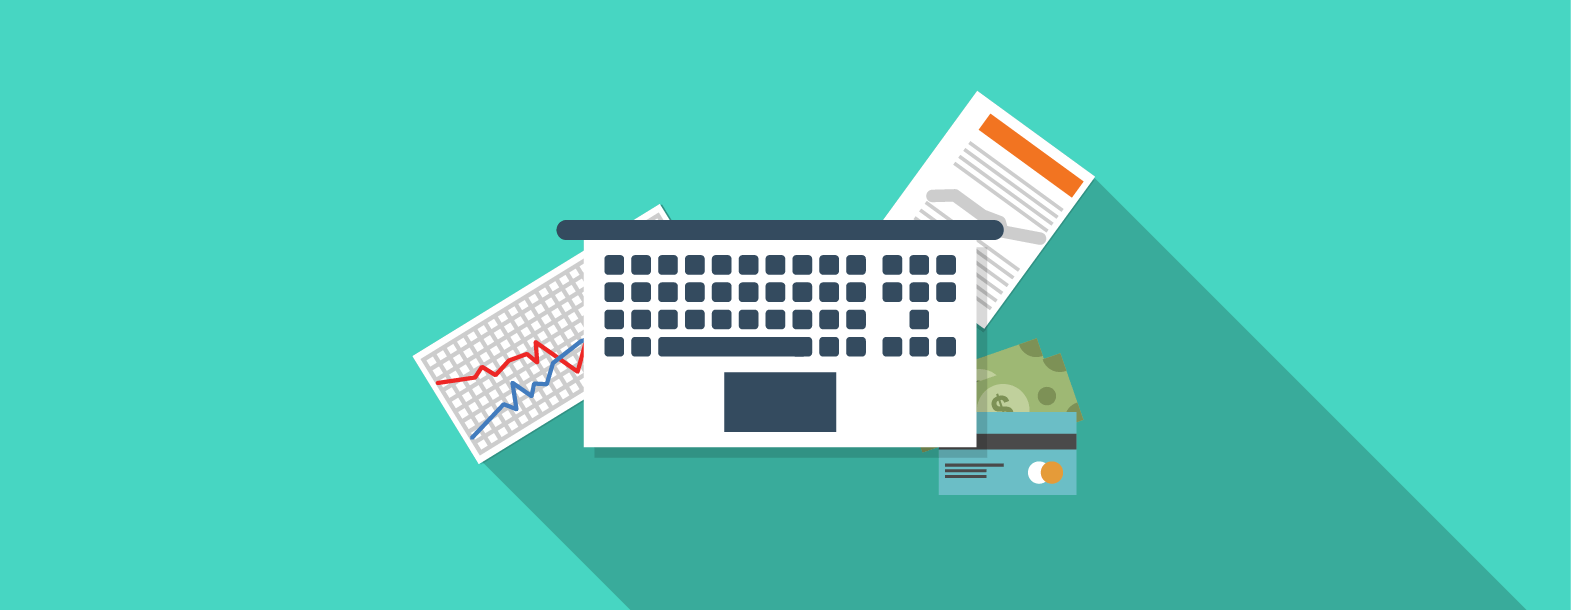 How to turn knowledge into profits data analysis in ecommerce – Data Analysis